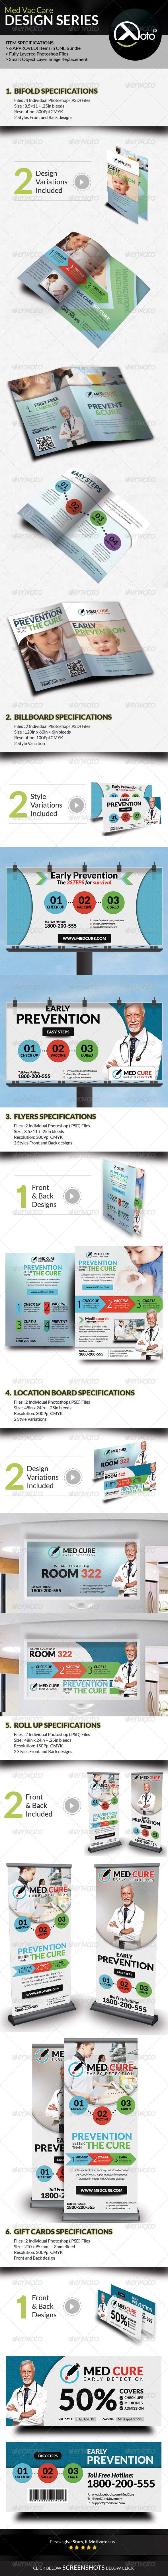 GraphicRiver Med Vac Cure Health Care Design Series Bundle 8677250